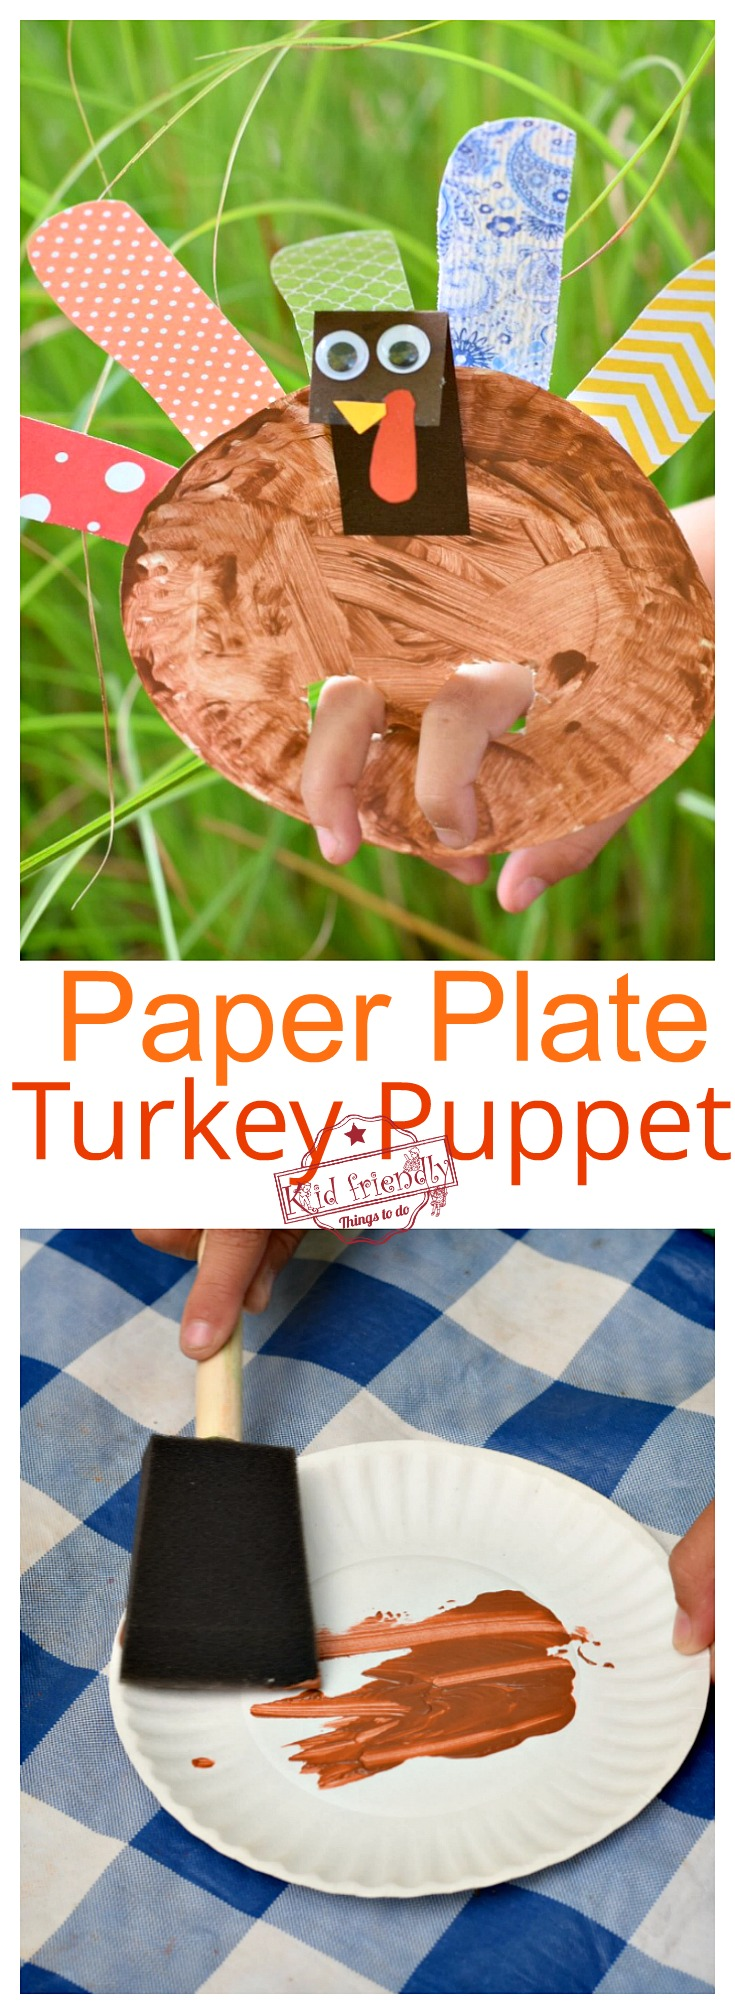 Make A Paper Plate Turkey Puppet for a Thanksgiving Craft with Kids - Homemade & Adorable. For Preschool kids & older kids too -www.kidfriendlythingstodo.com